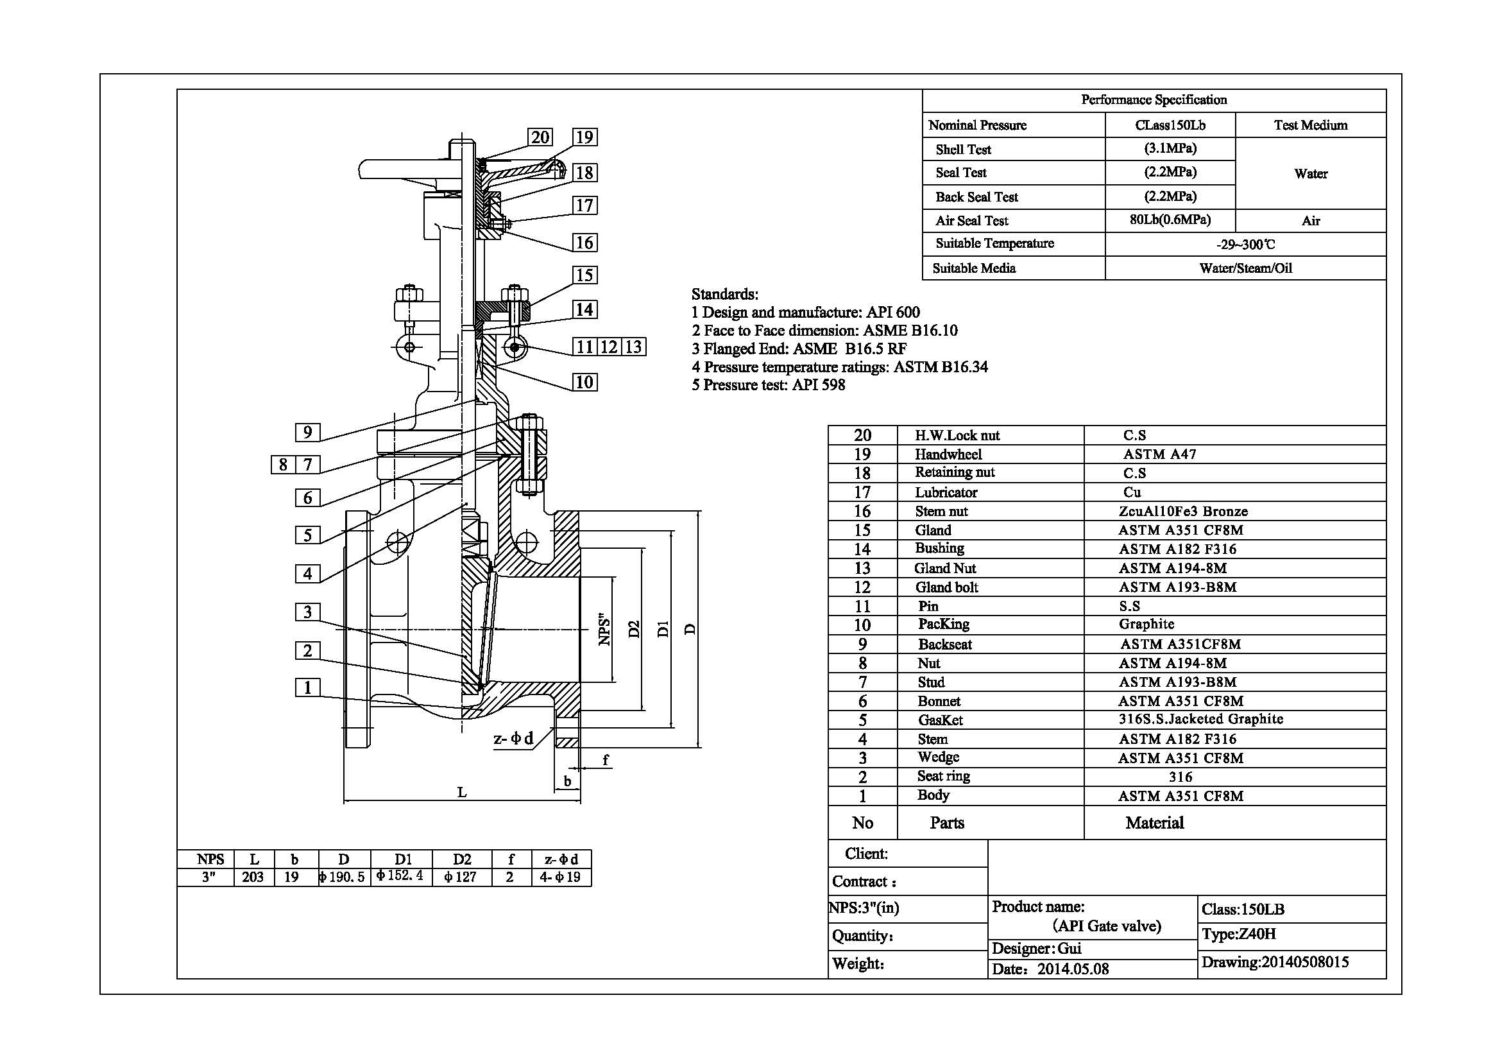 Stainless Steel Flange Gate Valve Cf8 Body And 304 Trim 150lb 3 Inch Industrial Valves